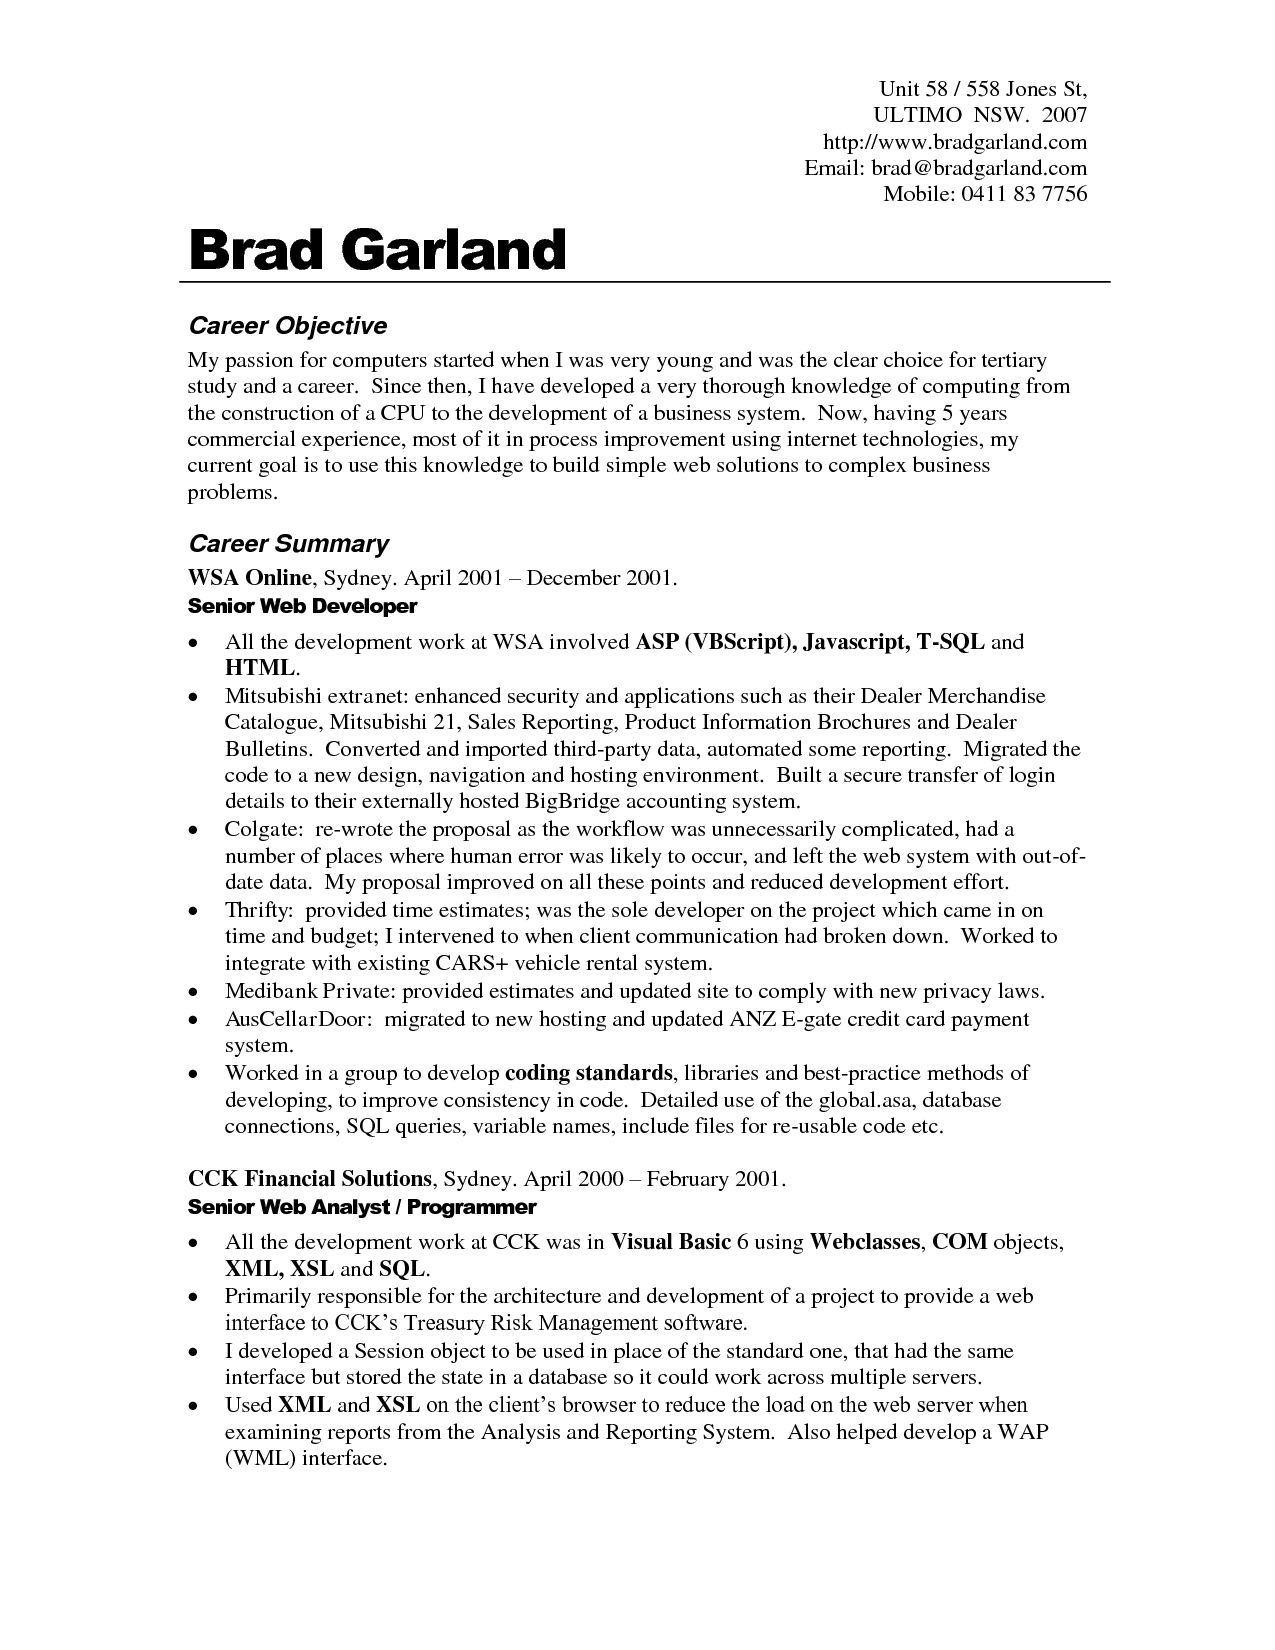 Example Of Objective Beauteous Resume Examples Job Objective  Sample Resume Entry Level And .